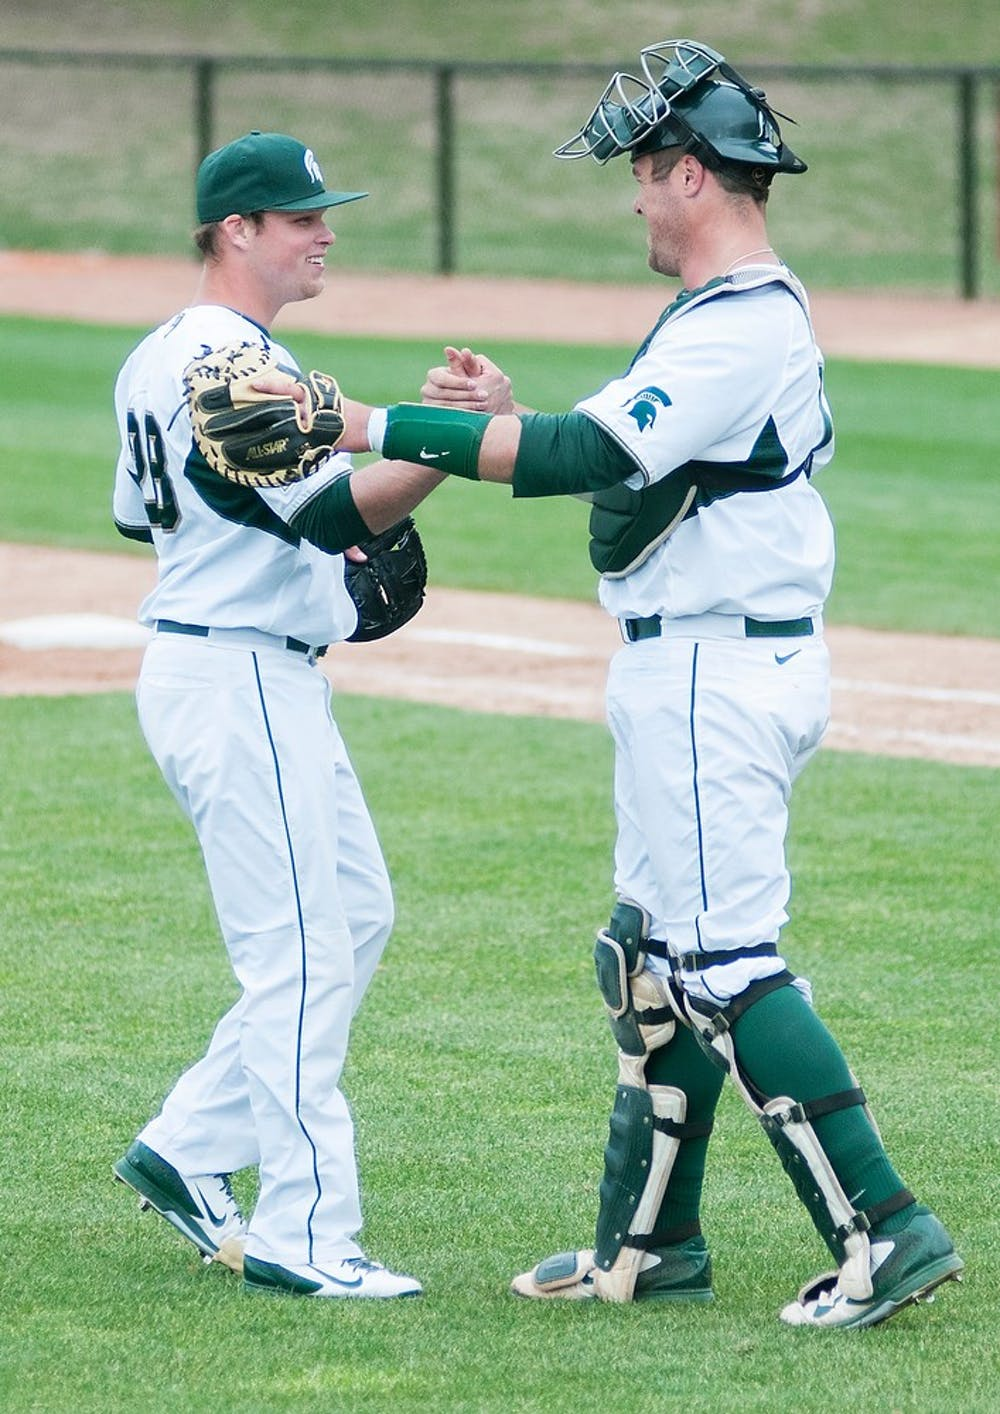 <p>Senior pitcher Chase Rihtarchik, left, celebrates with junior catcher/first baseman Blaise Salter following the game against Toledo on April 22, 2014, at McLane Baseball Stadium at Old College Field. The Spartans defeated the Rockets, 4-2. Danyelle Morrow/The State News</p>